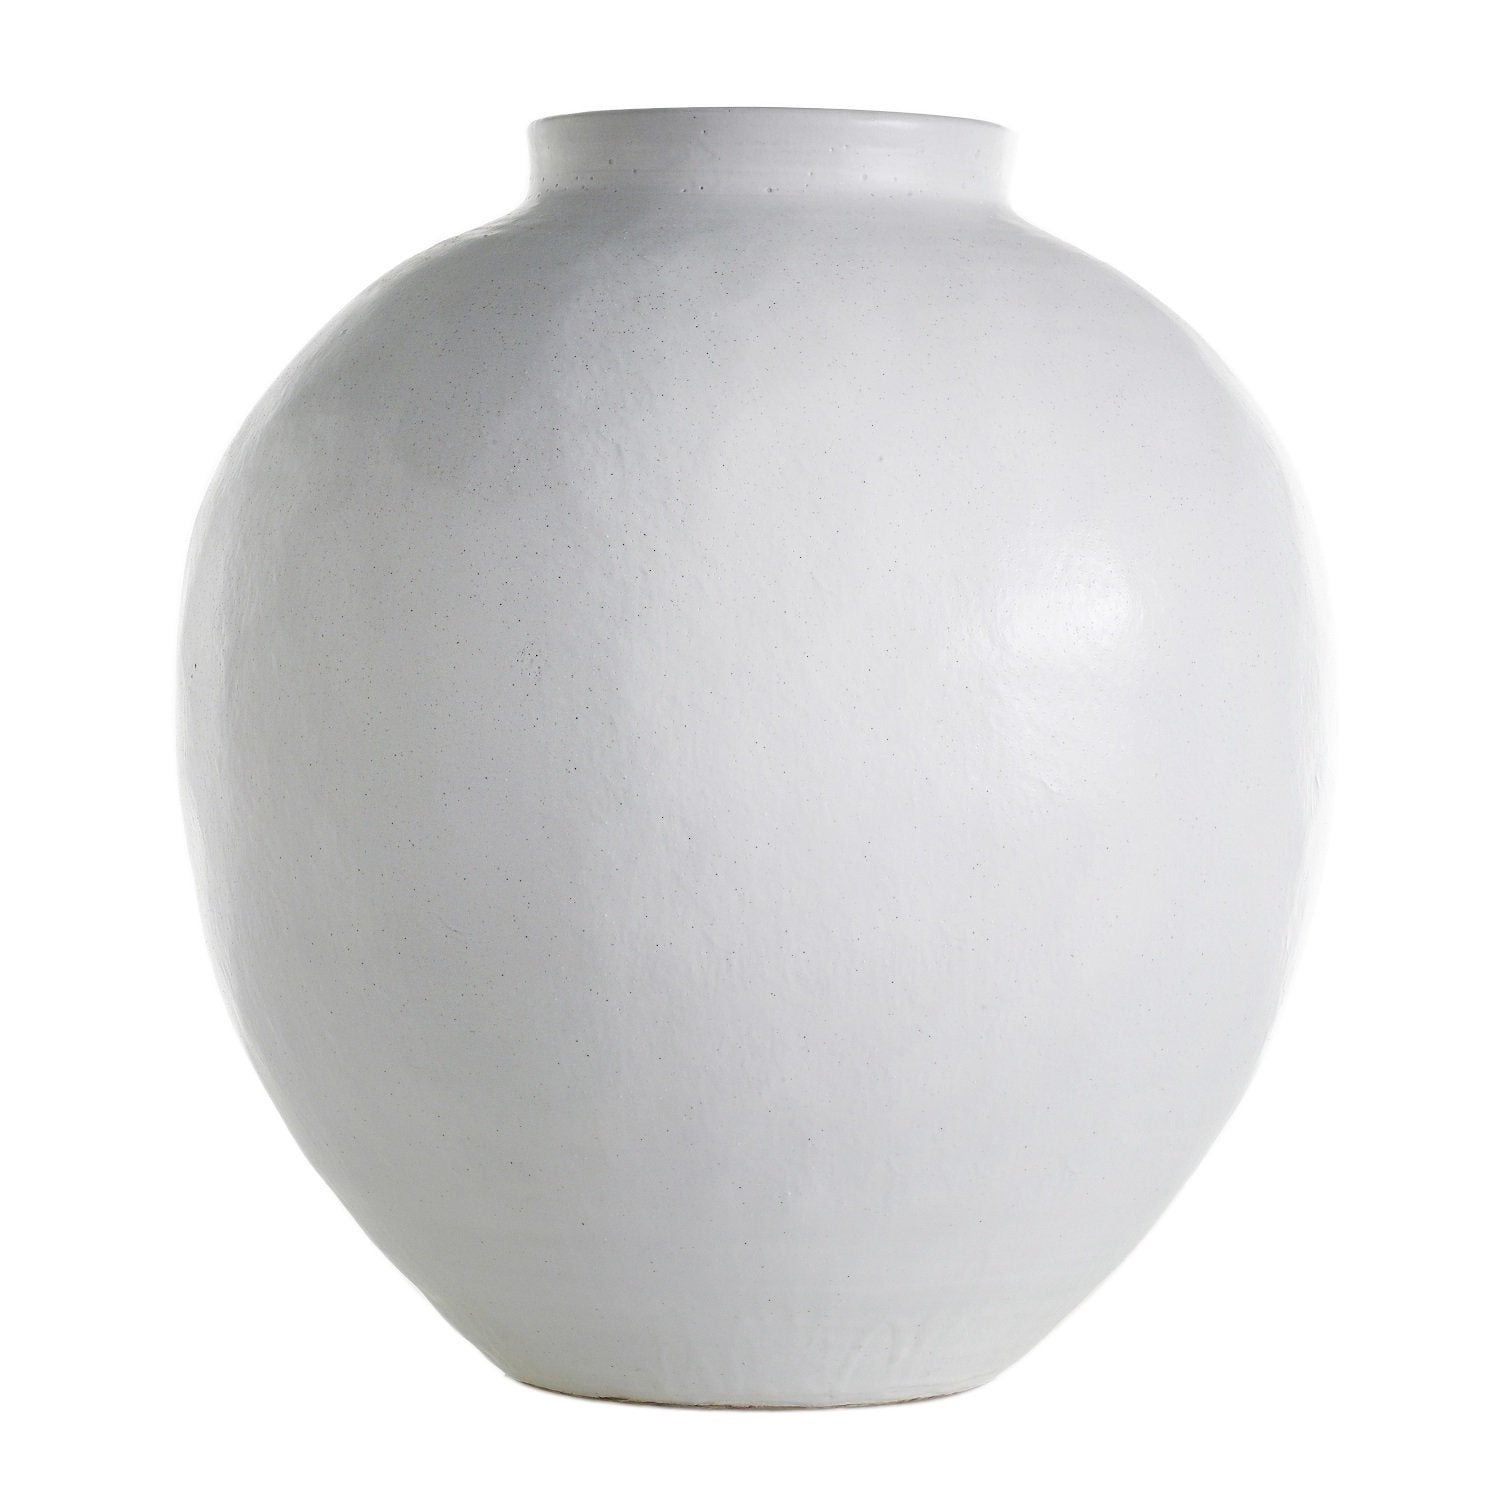 Santorini Indoor/Outdoor Large White Vase Planters